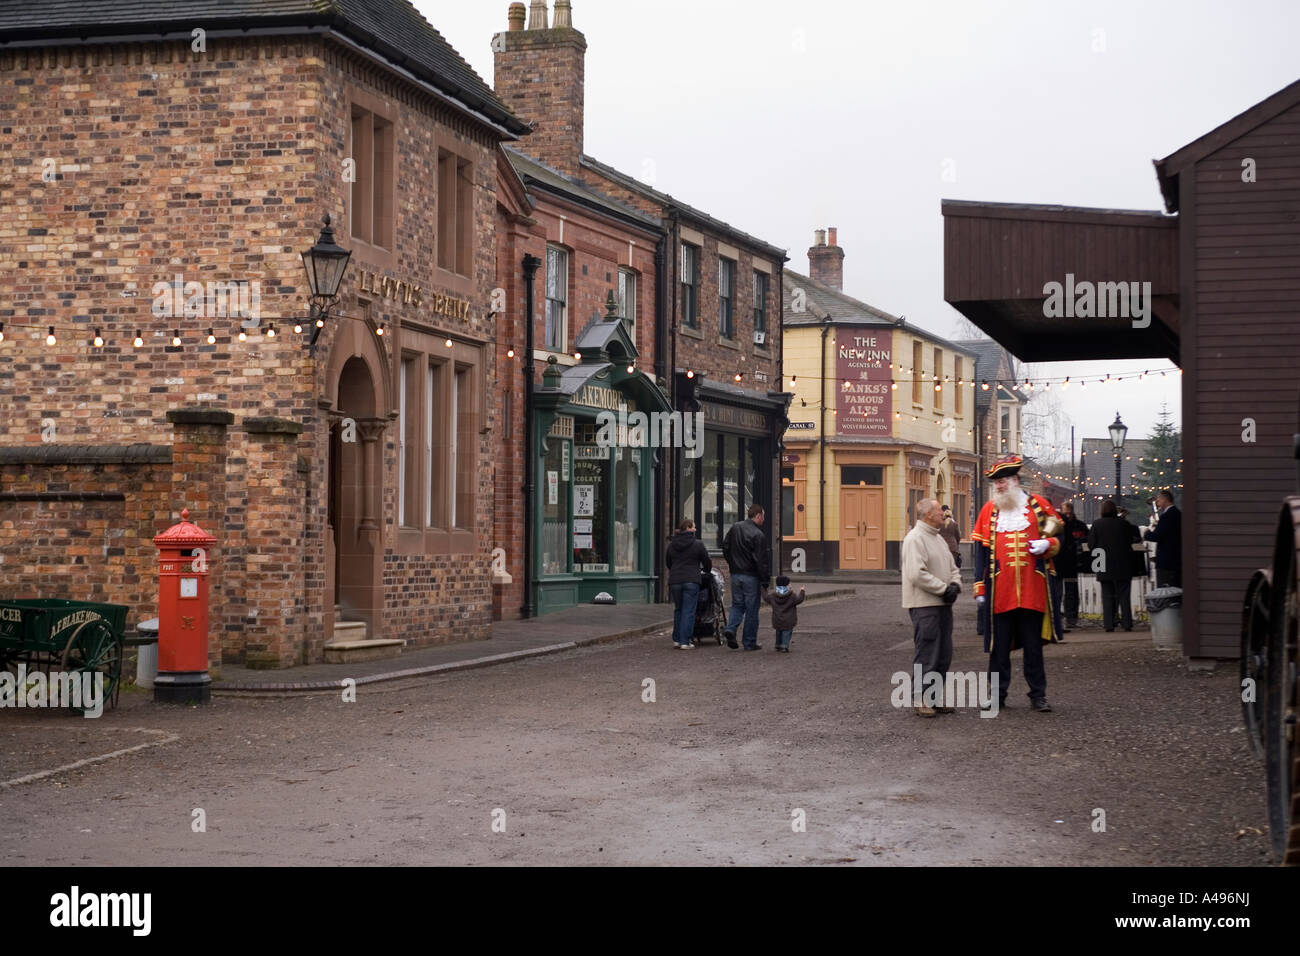 UK Shropshire Ironbridge Blists Hill Victorian Town Museum the High Street at Christmas - Stock Image